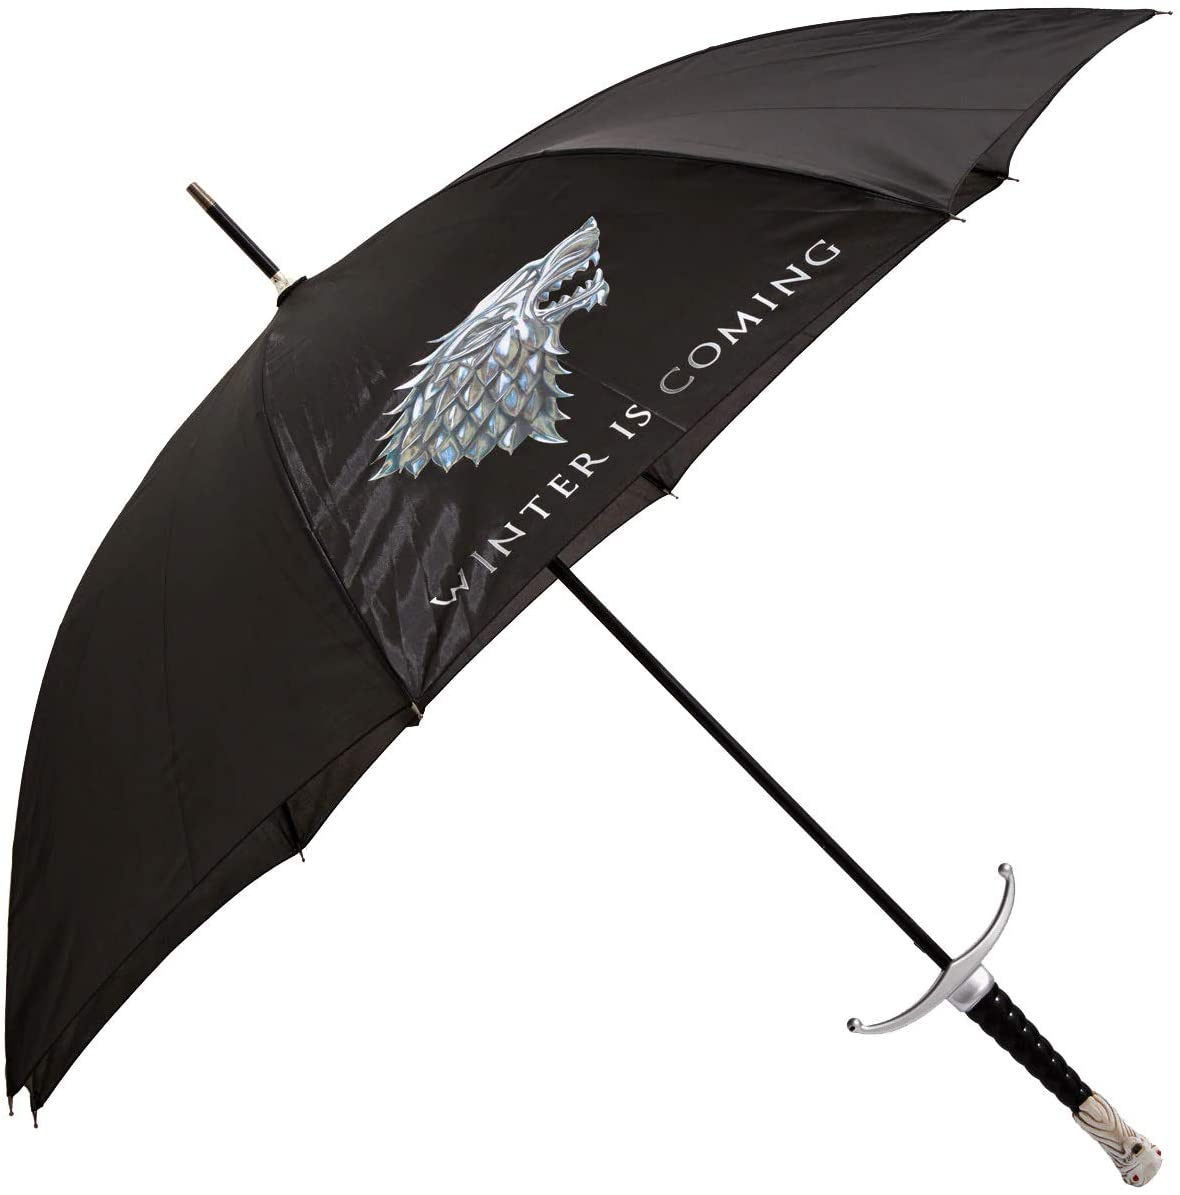 game-of-thrones-gifts-umbrella